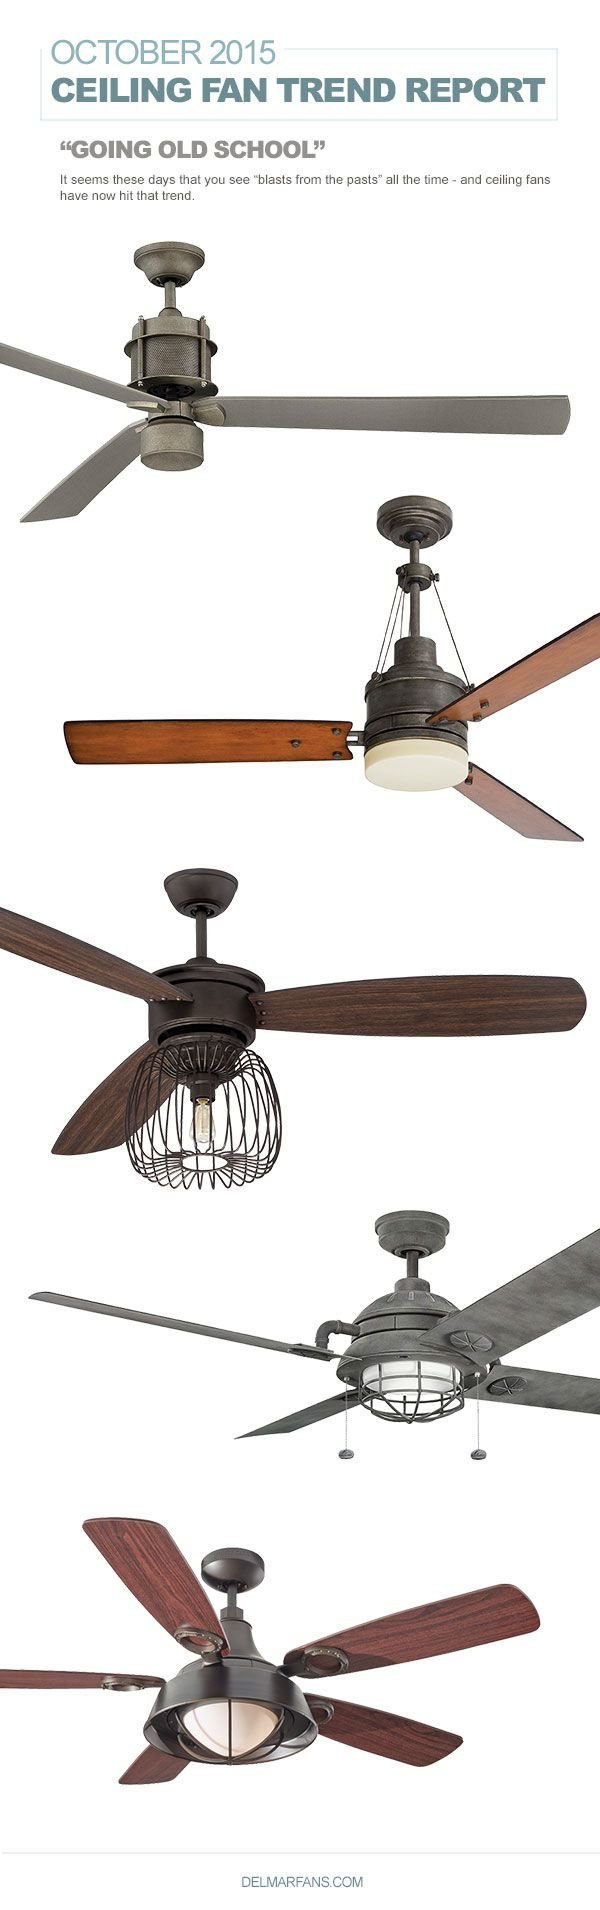 light pictures luxury ceiling design of room fan striking kit dining inspirational fans with south ceilings industrial afterauschwitz